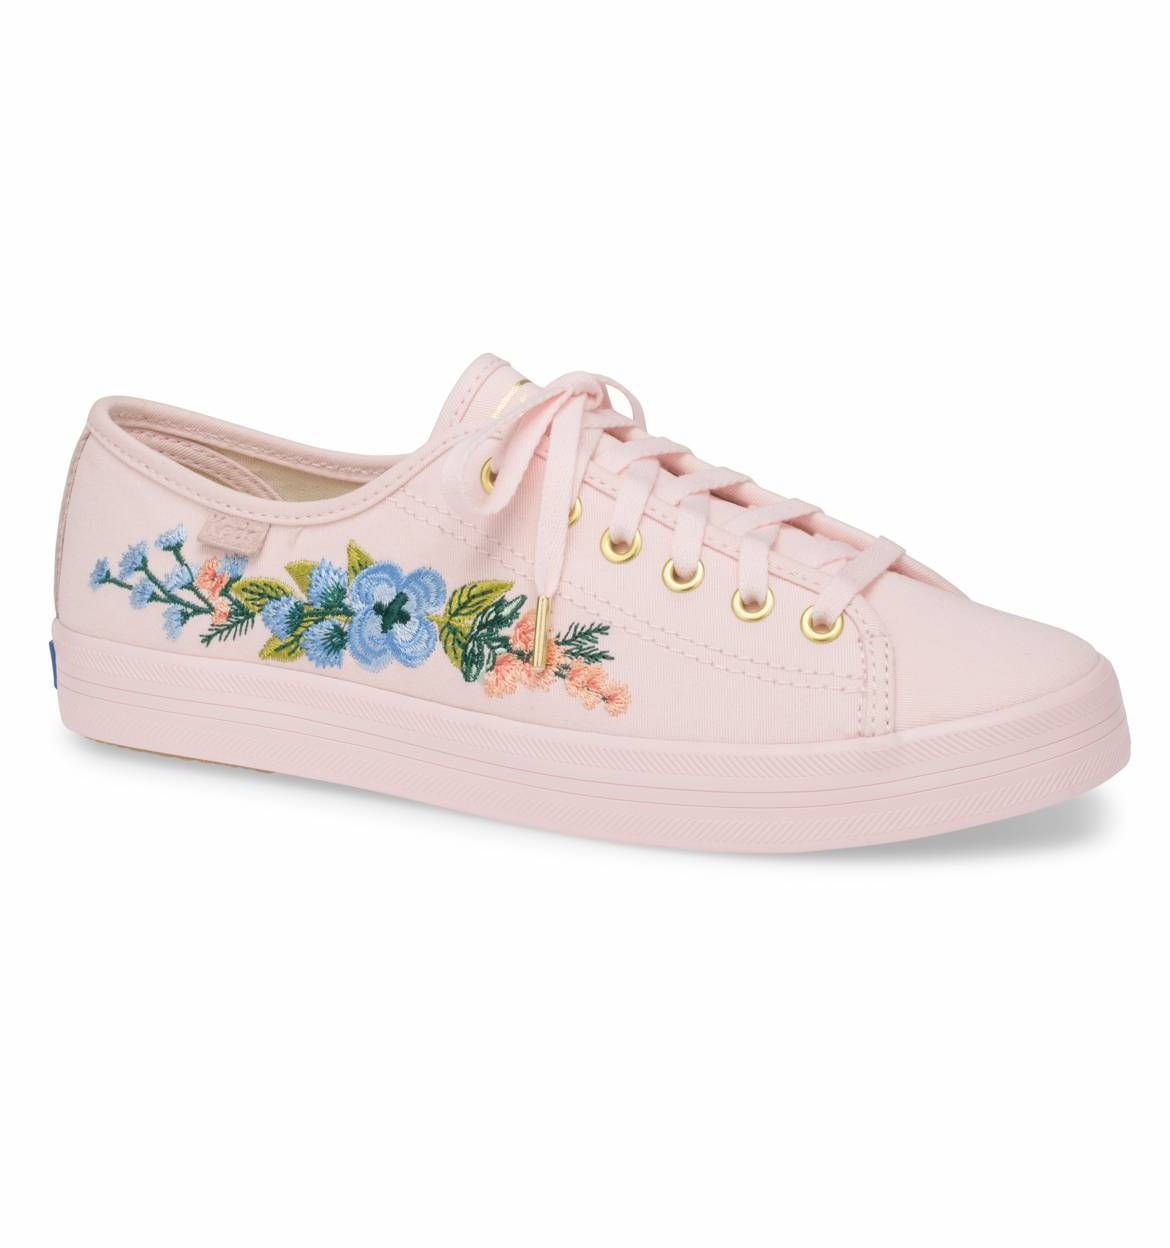 cbf3b84543 Embroidered Herb Garden Rifle Paper Co. × Keds® Collection